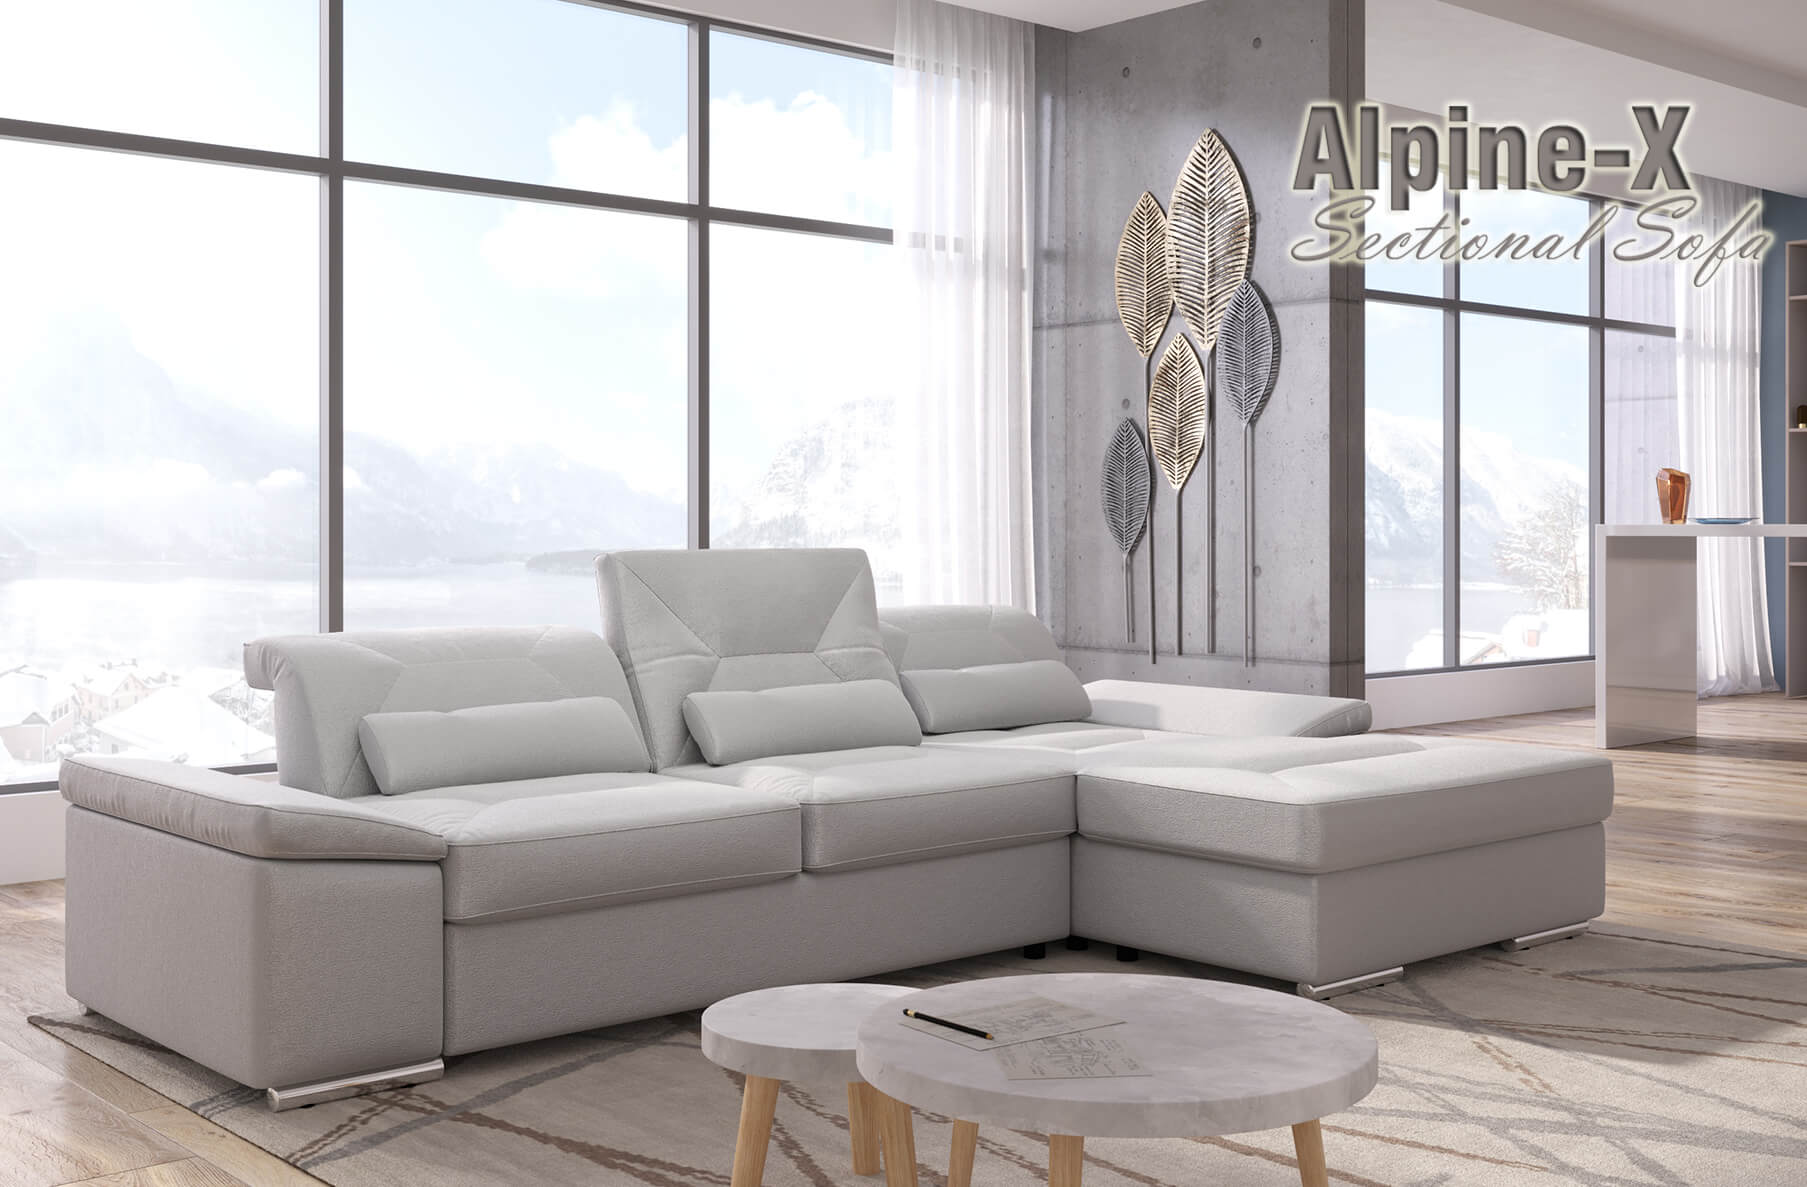 Alpine-X Sectional with bed and storage | Nordholtz